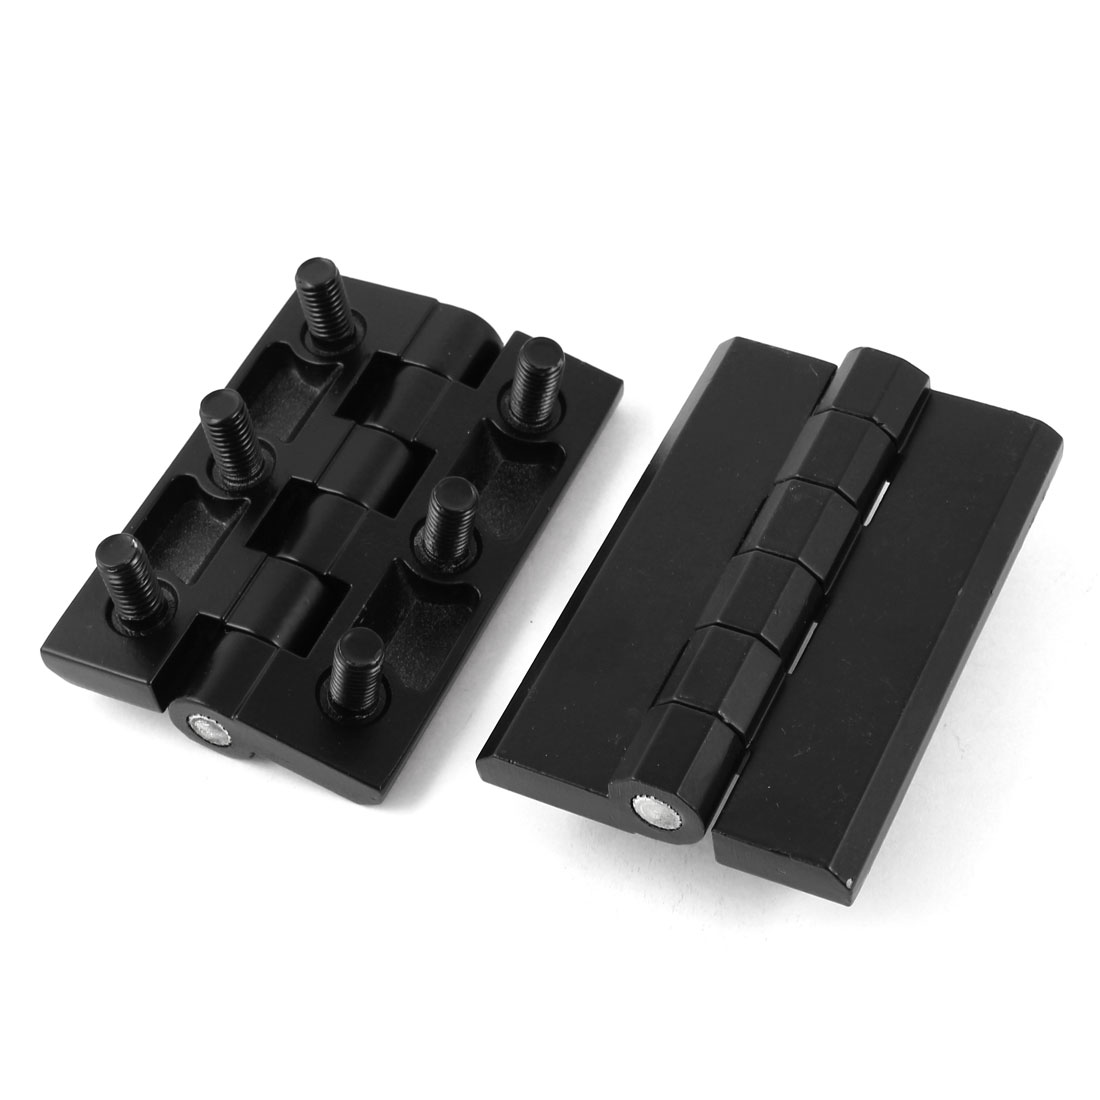 2pcs Hardware Black Metal Closet Cupboard Door Butt Hinge 90mmx60mmx25mm